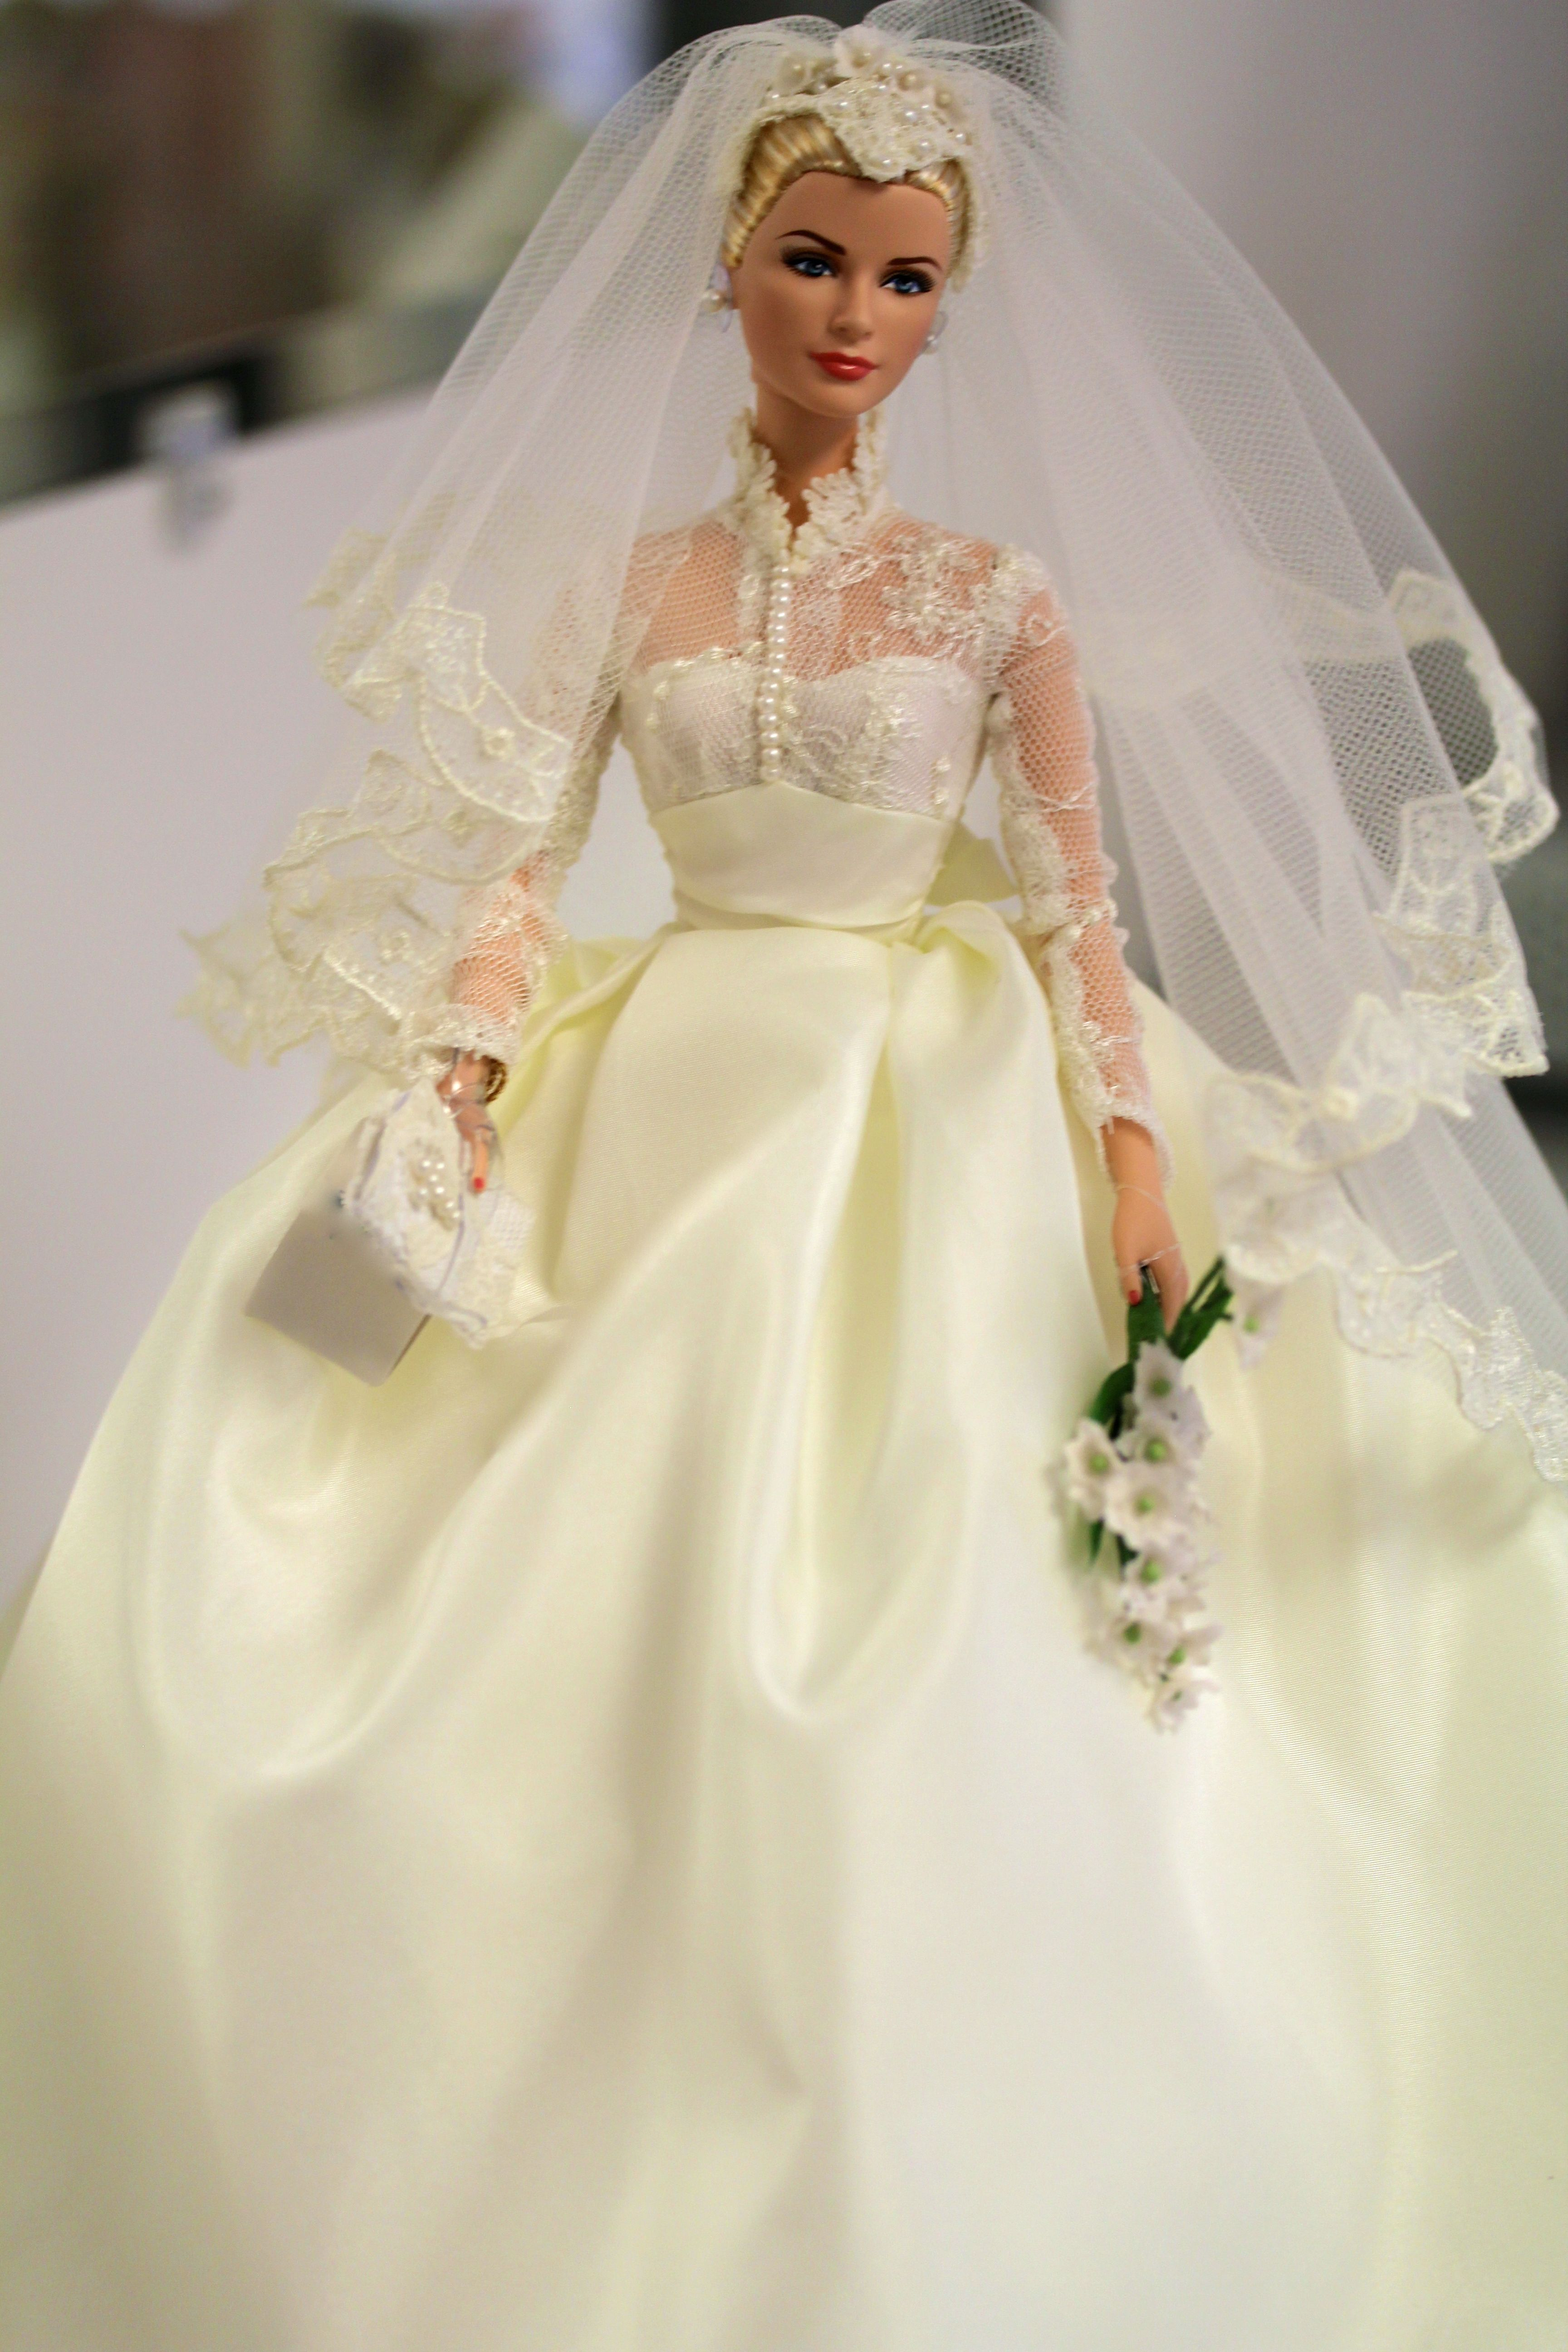 grace kelly bride doll collectible photo by dj nelson. Black Bedroom Furniture Sets. Home Design Ideas